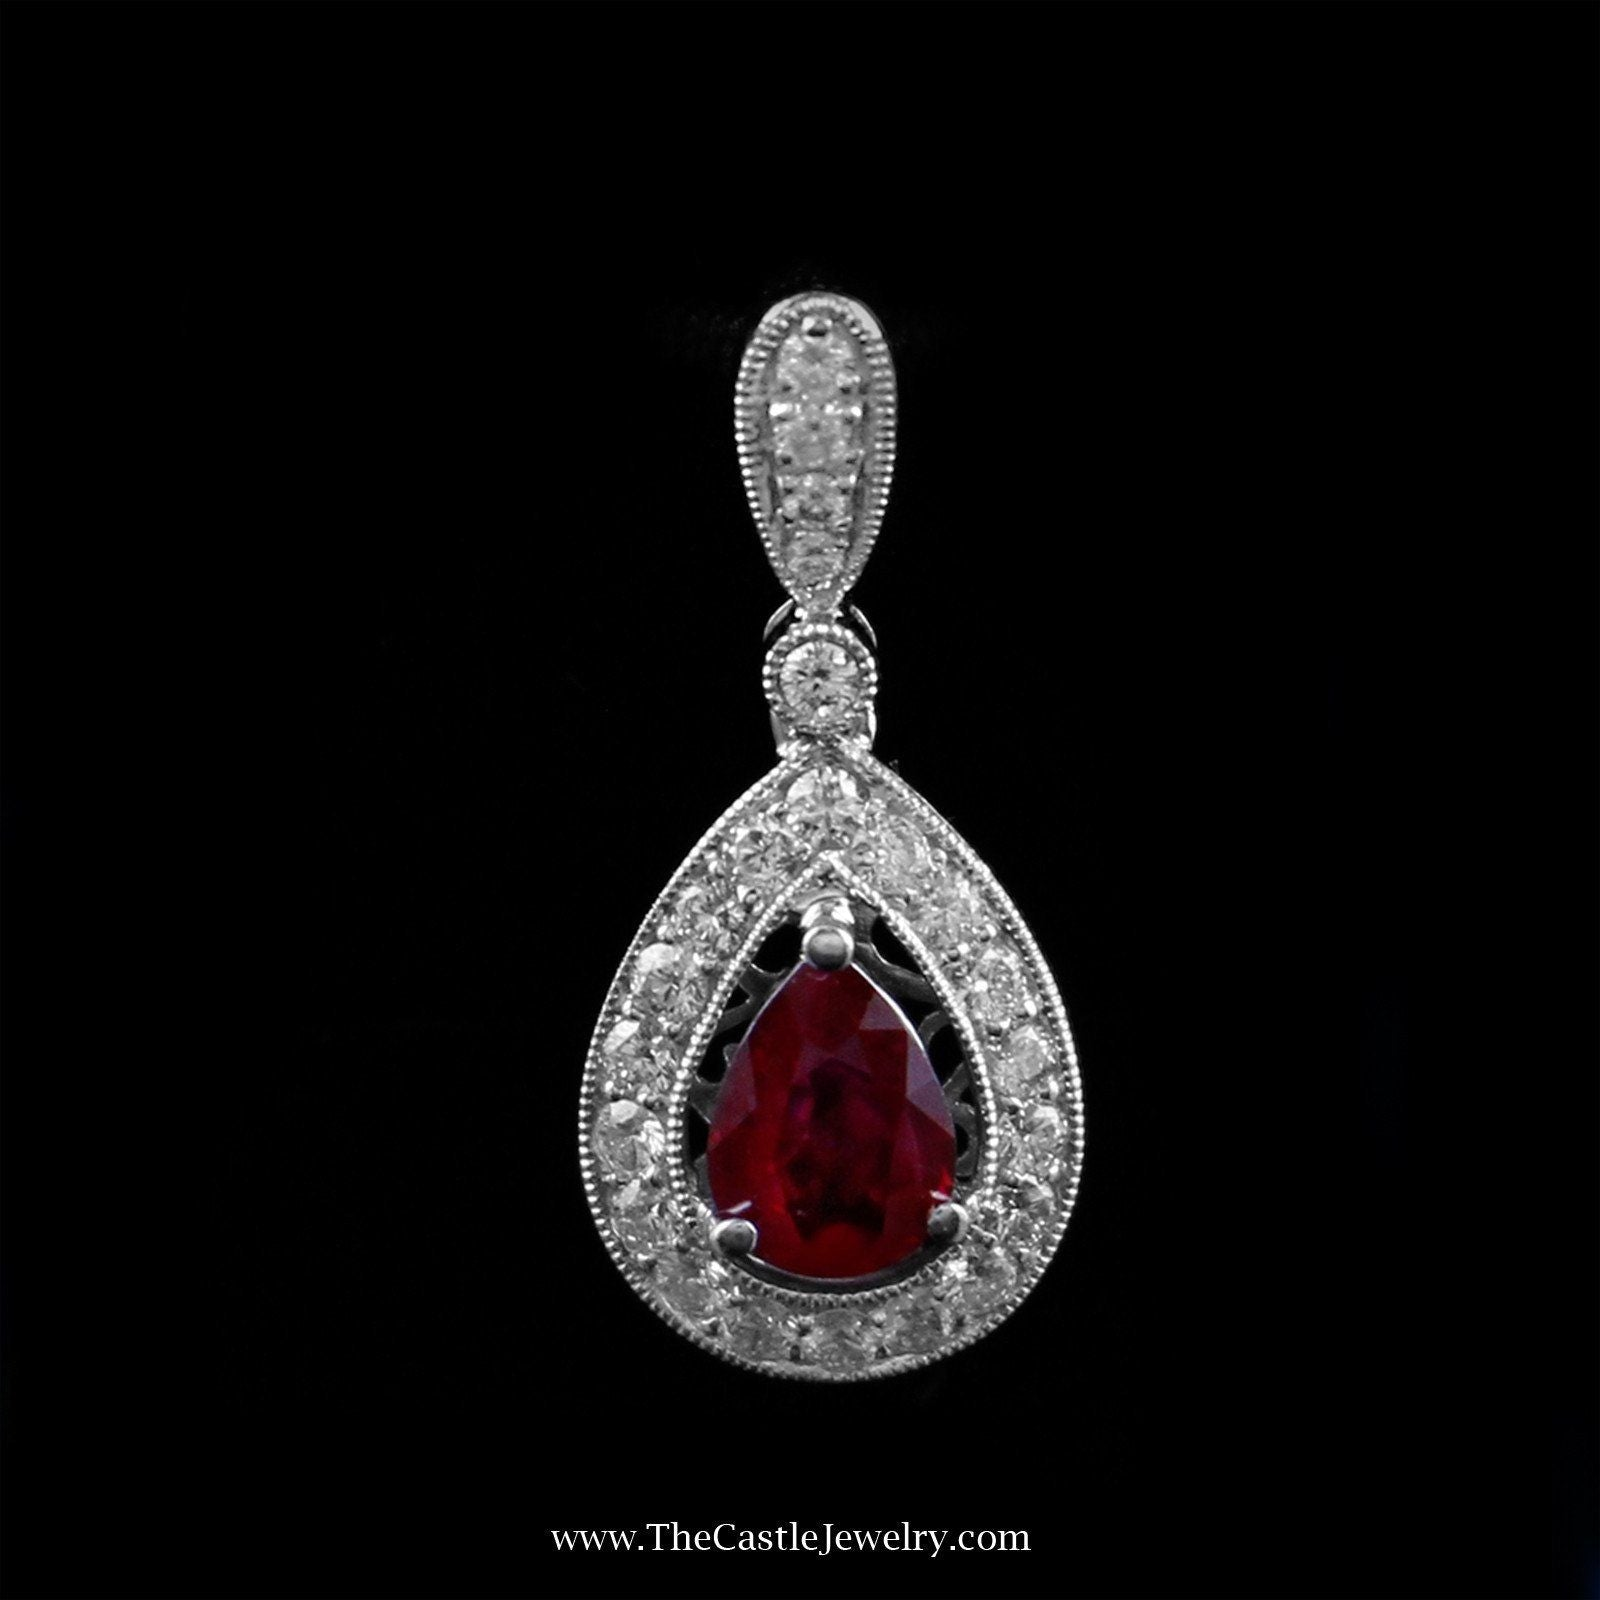 Beautiful Pear Cut Ruby Pendant with Diamond Bezel in 14K White Gold